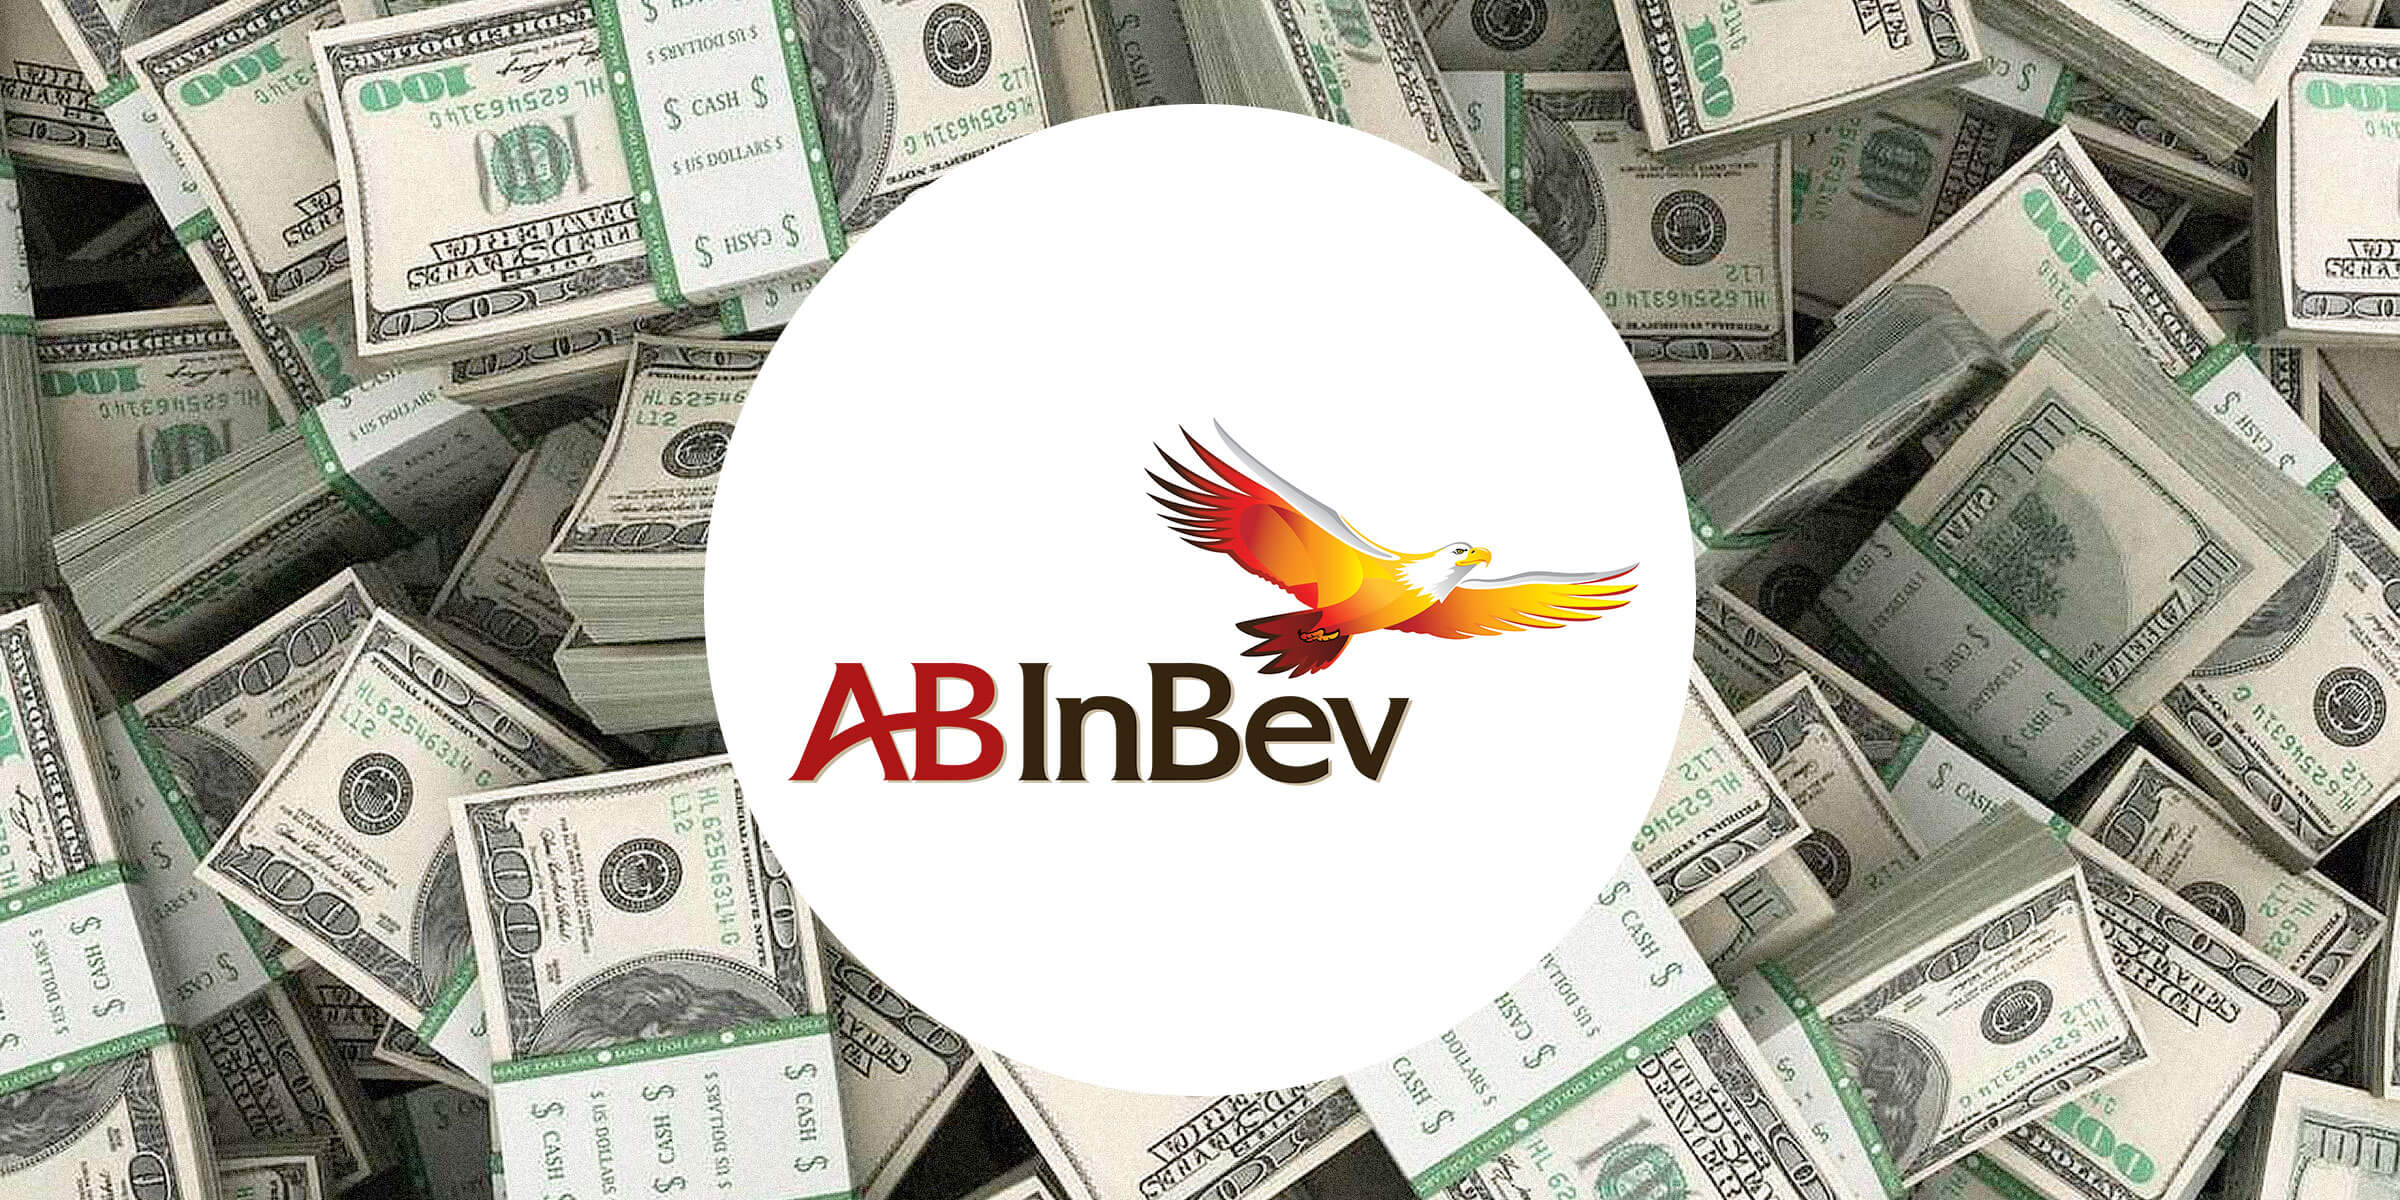 Anheuser-Busch InBev has once again run afoul of the Alcohol and Tobacco Tax and Trade Bureau and will pay $5 million for alleged trade practice violations.